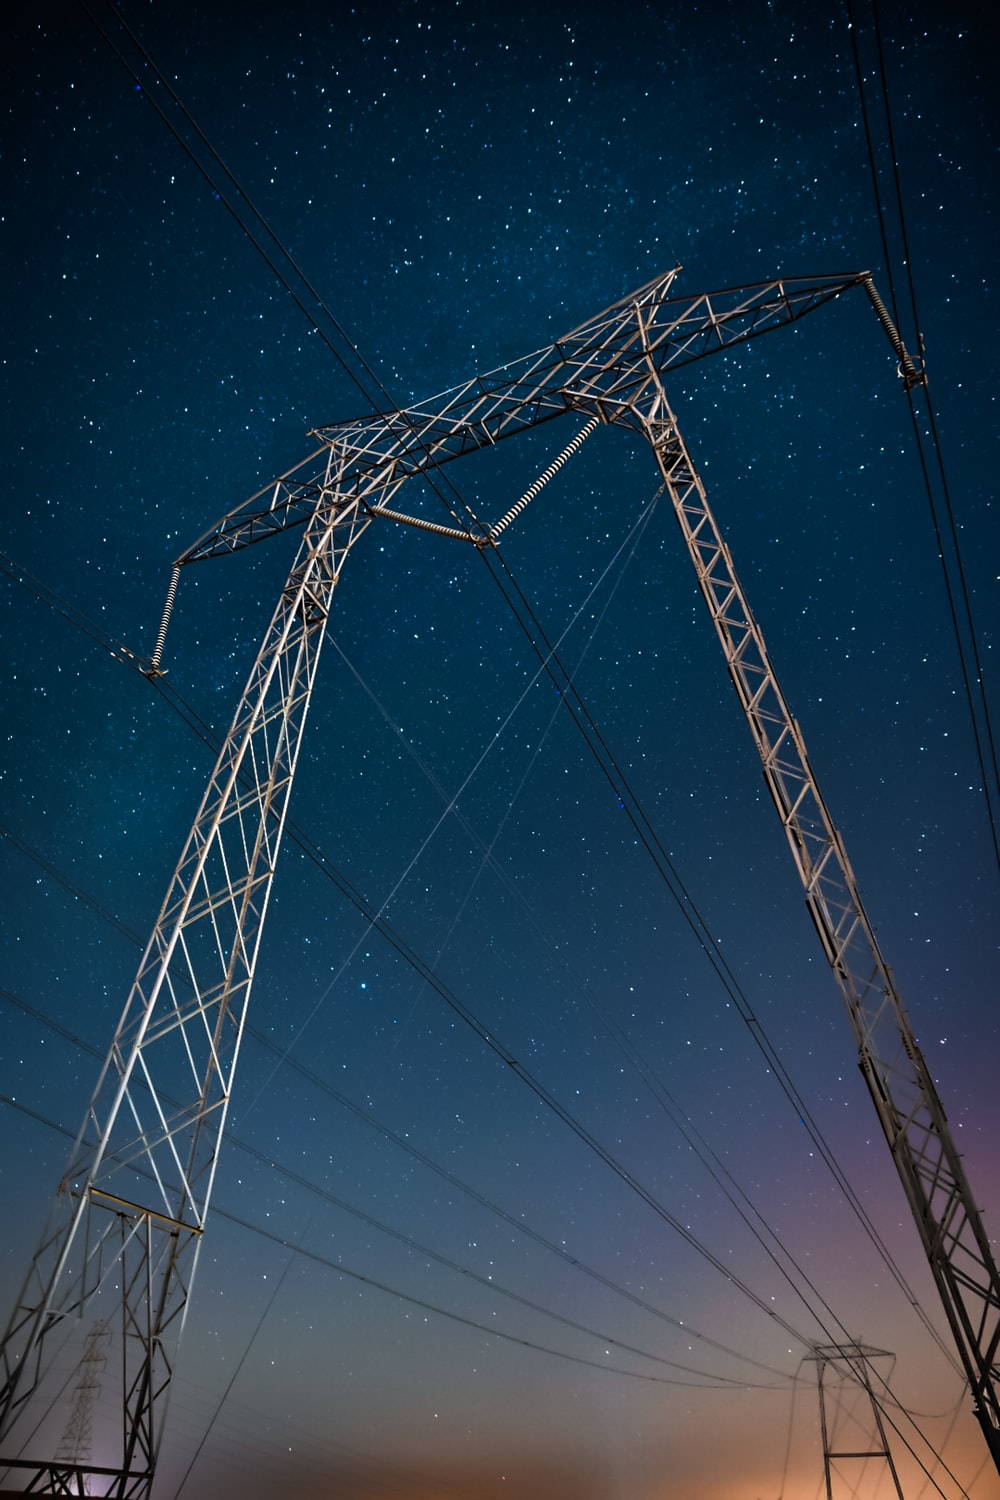 low angle photography of transmitter tower